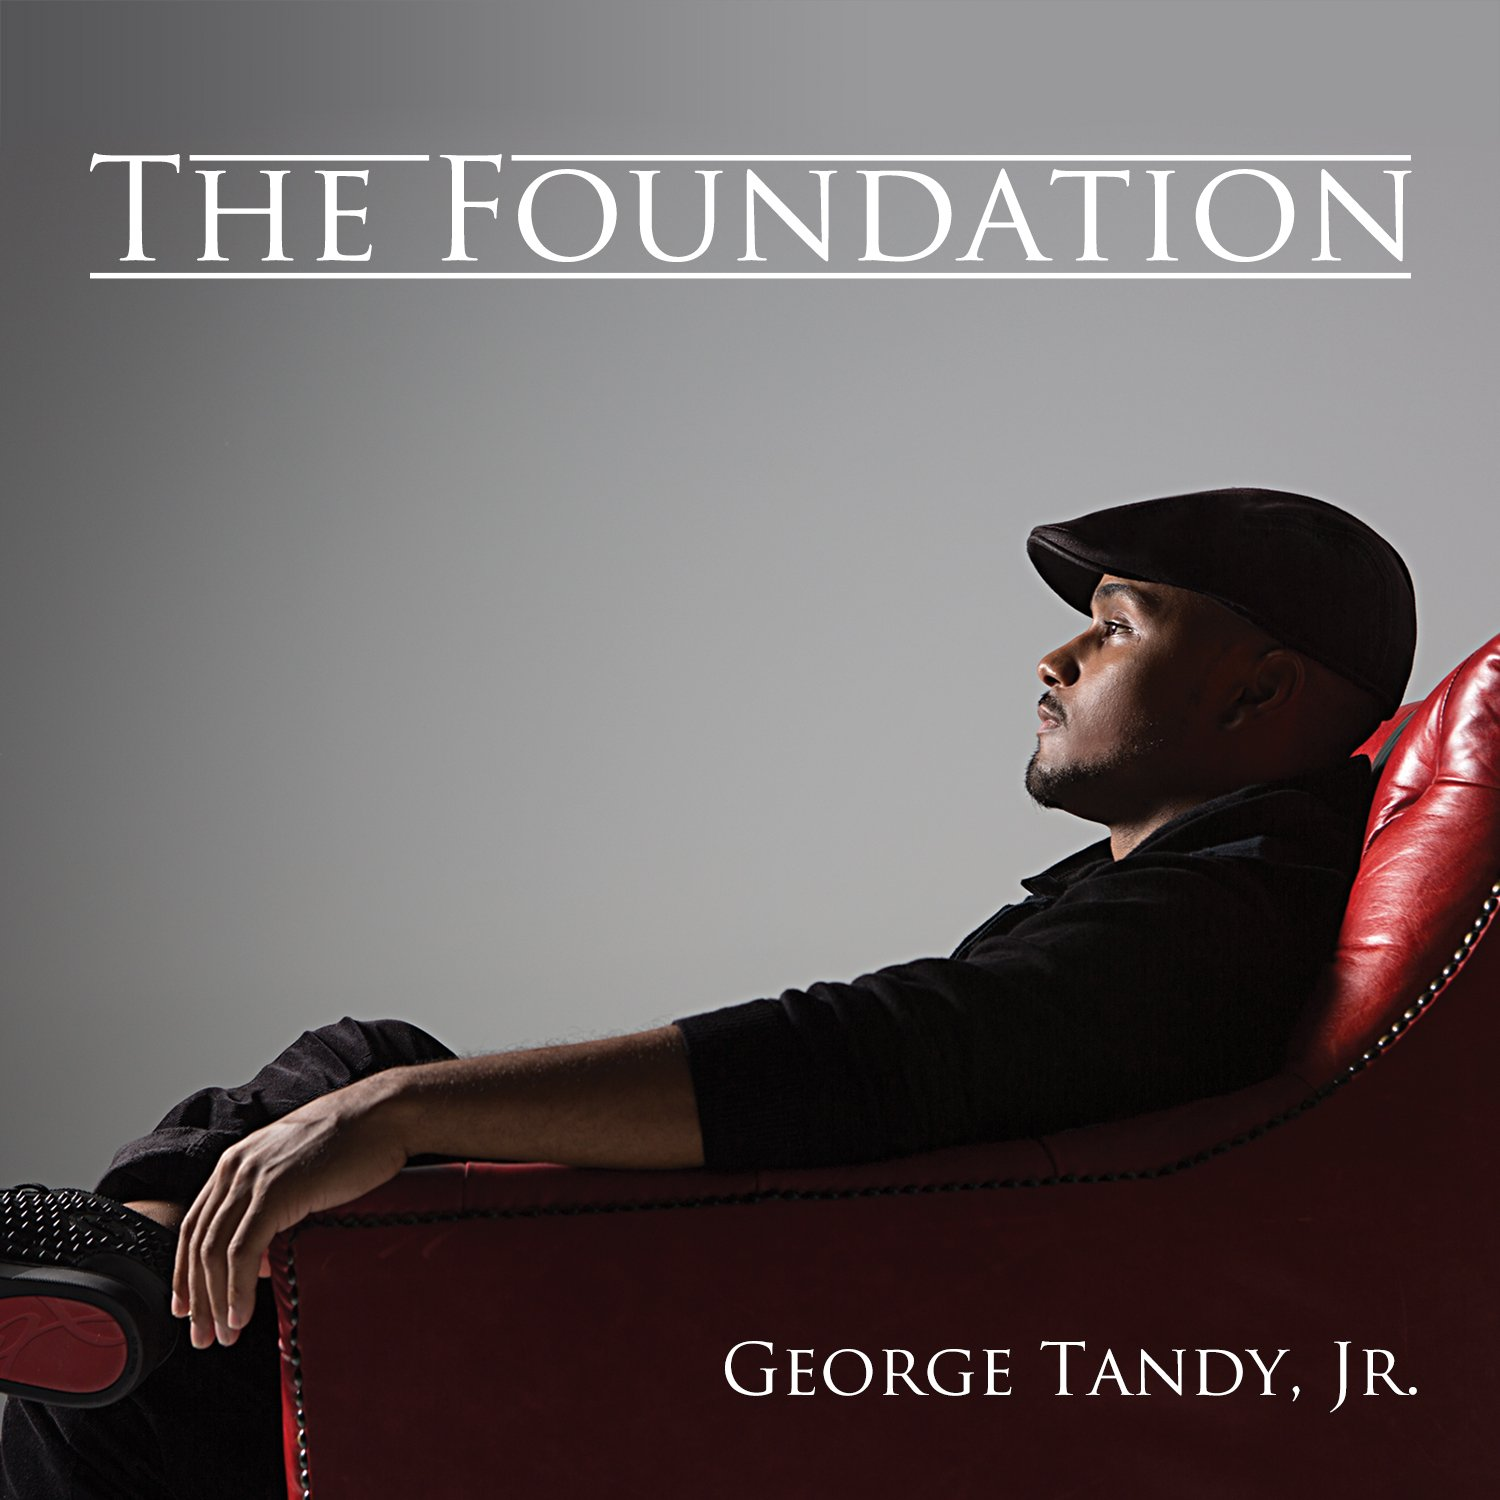 George Tandy Jr. - The Foundation - Amazon.com Music